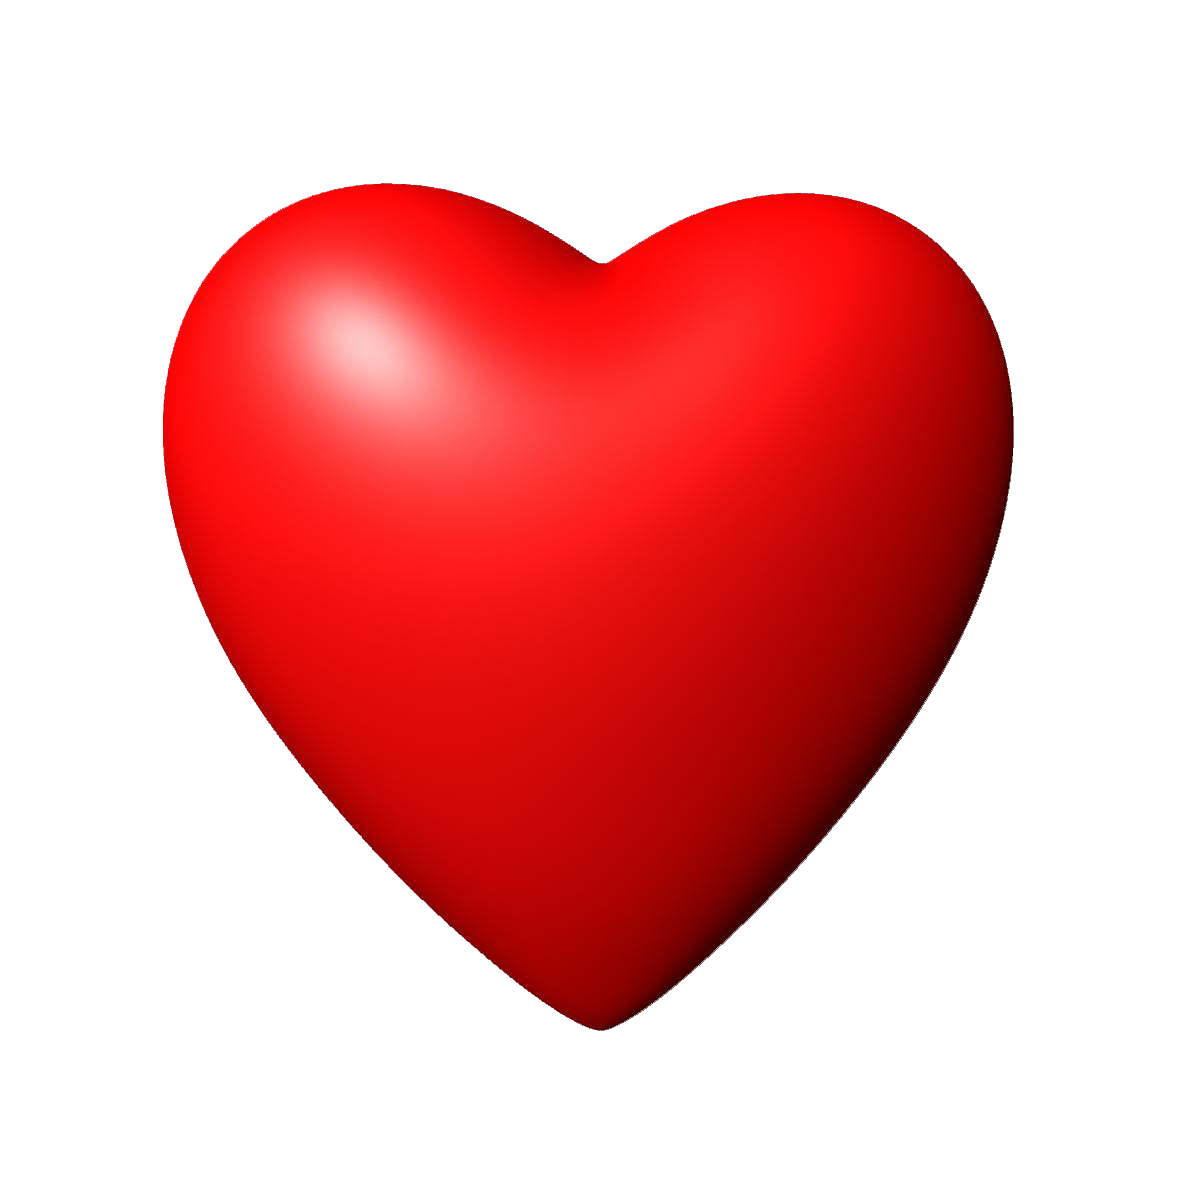 Red heart png. D image mart